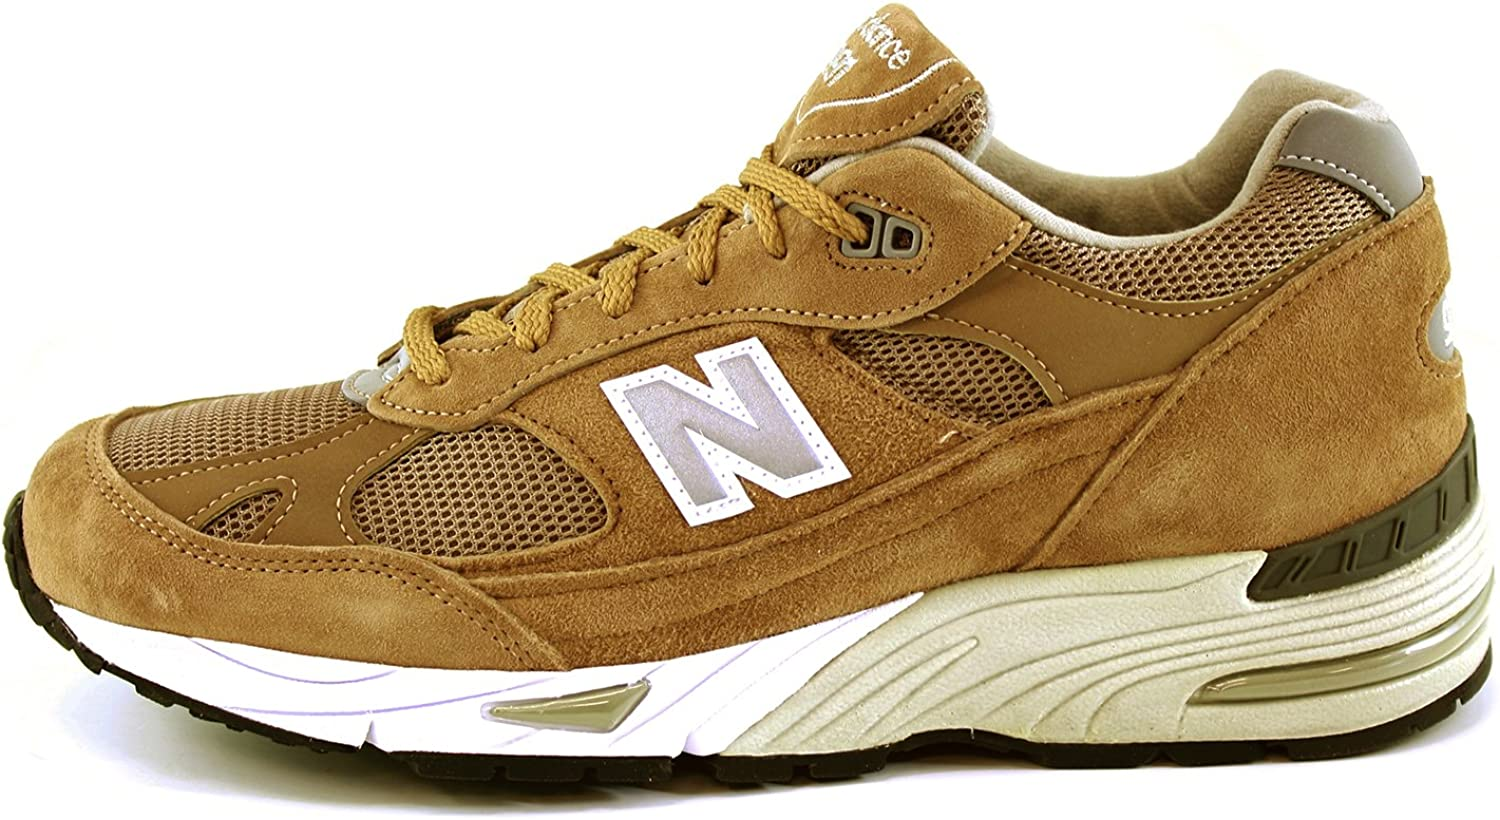 New Balance 991 Limited Edition Sneaker in pelle Beige Size: 45 ...